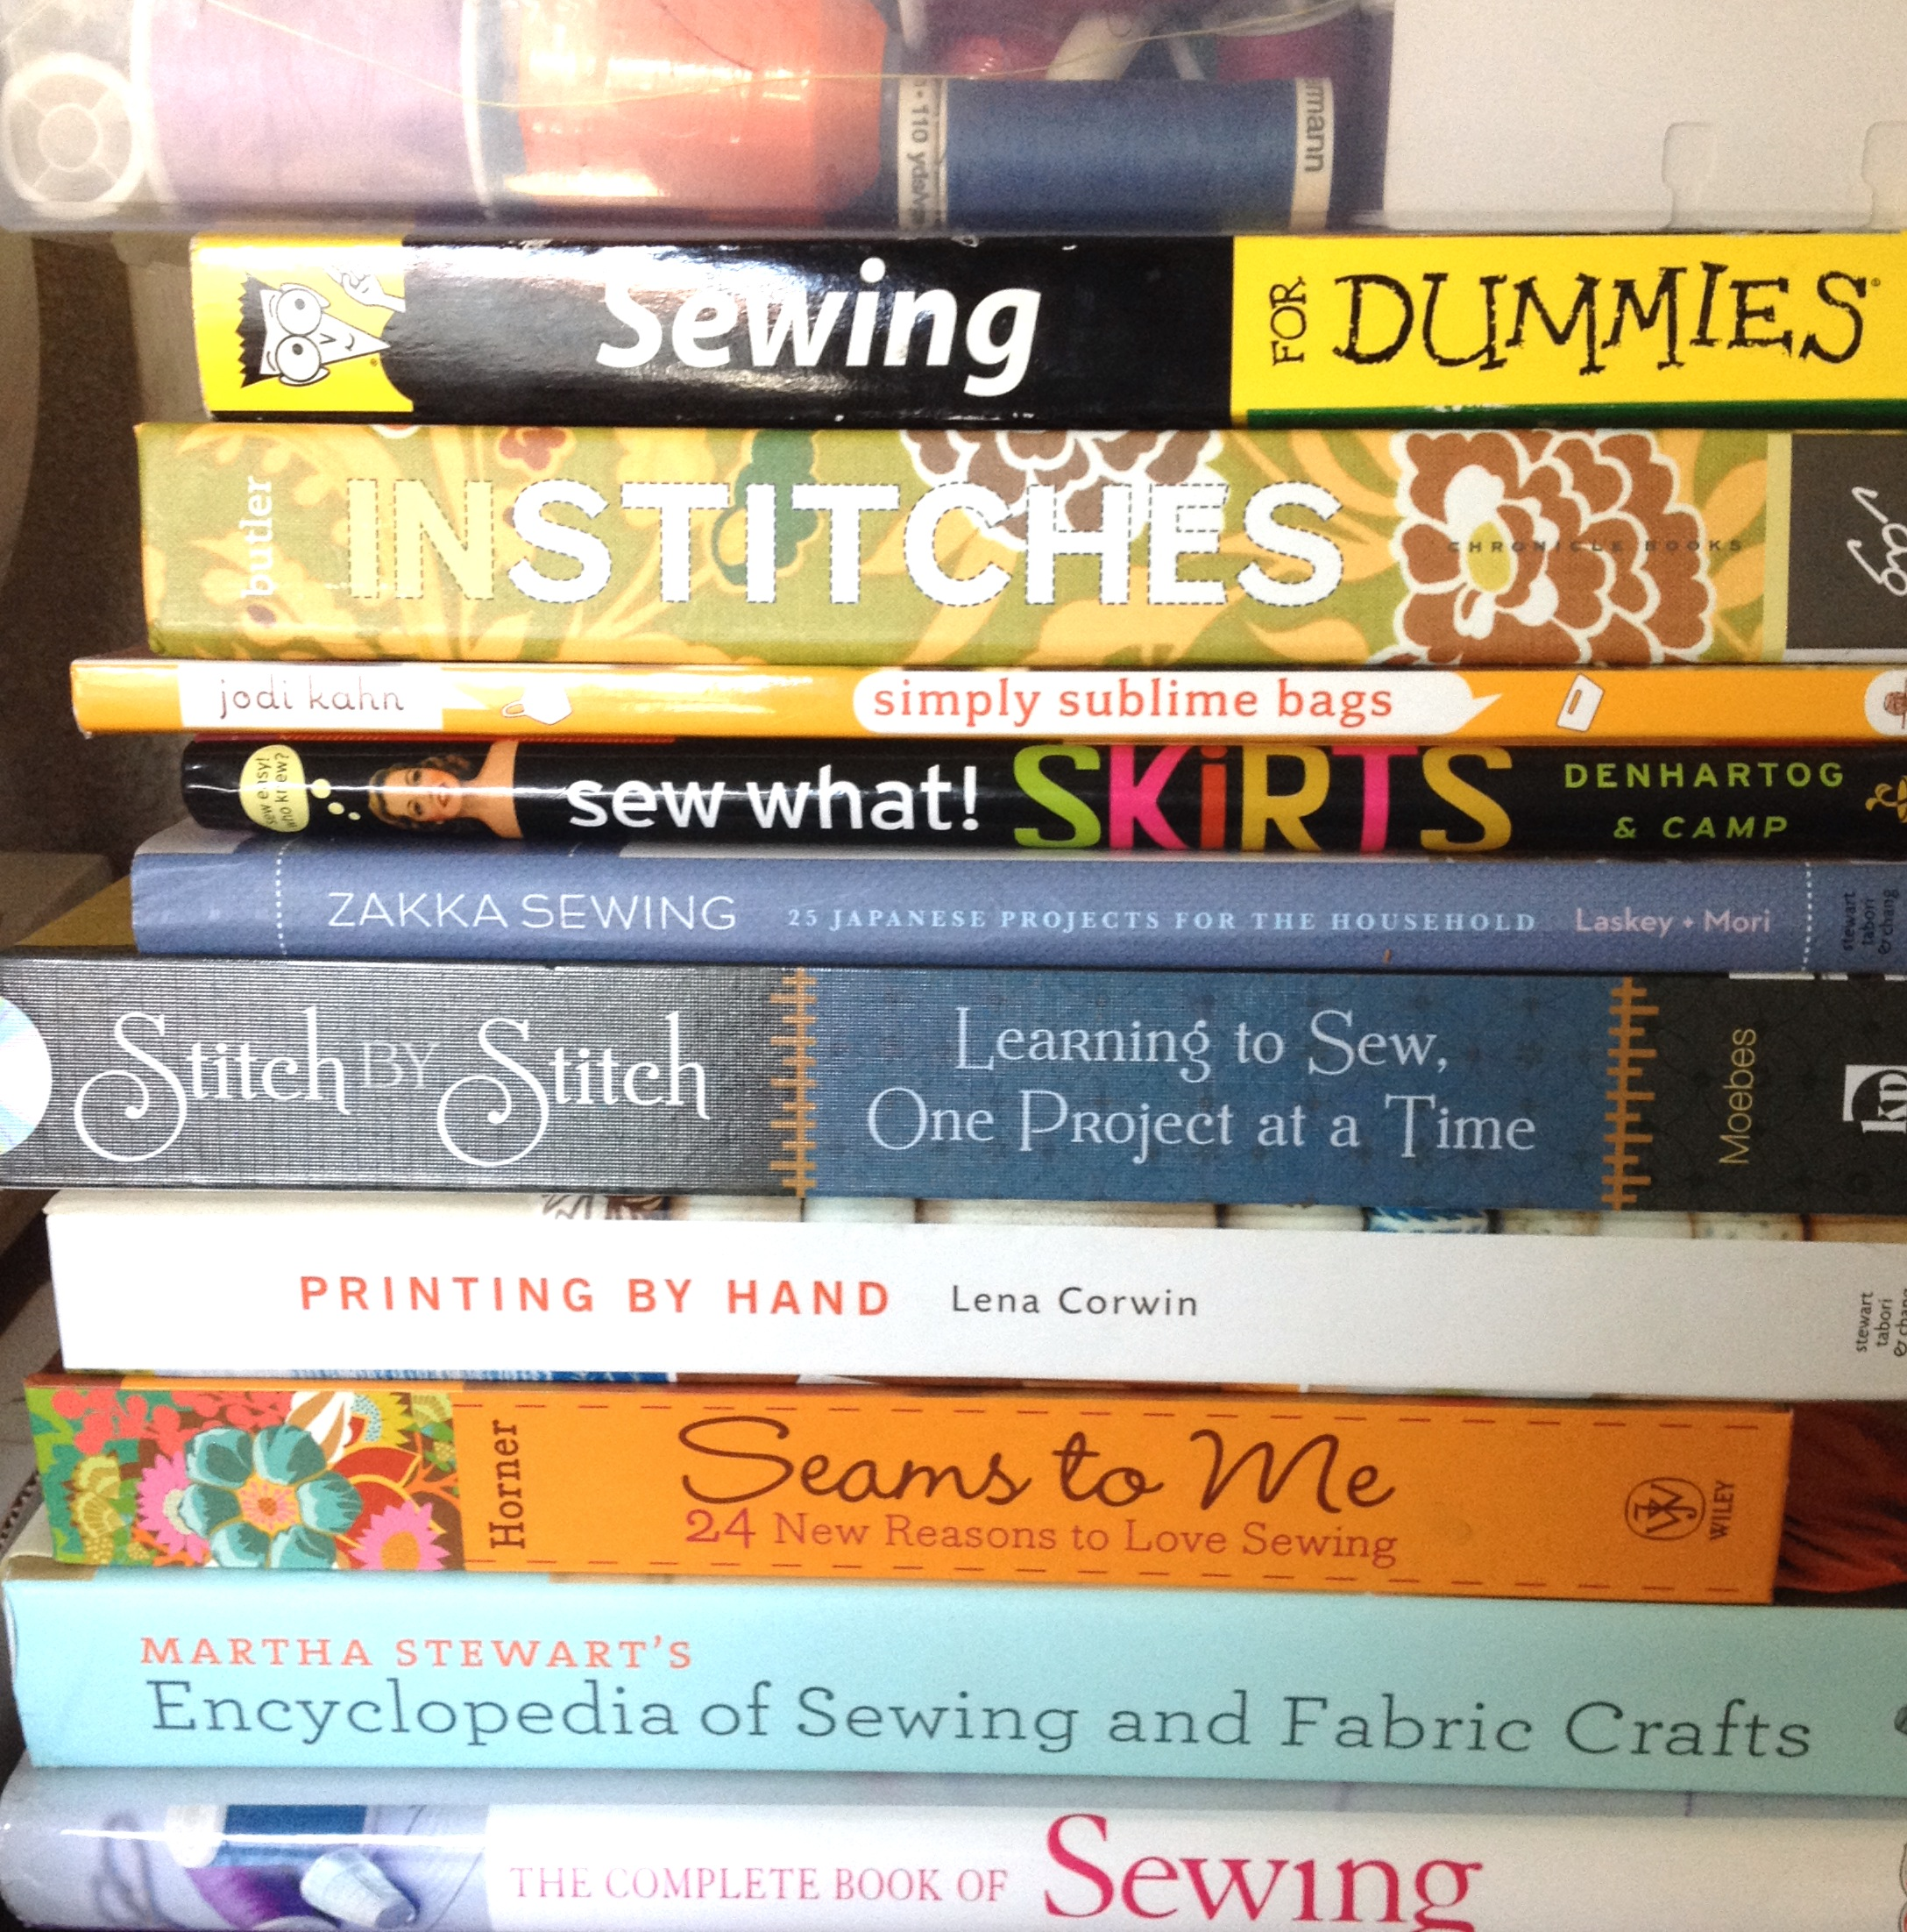 Revisiting my Sewing Books